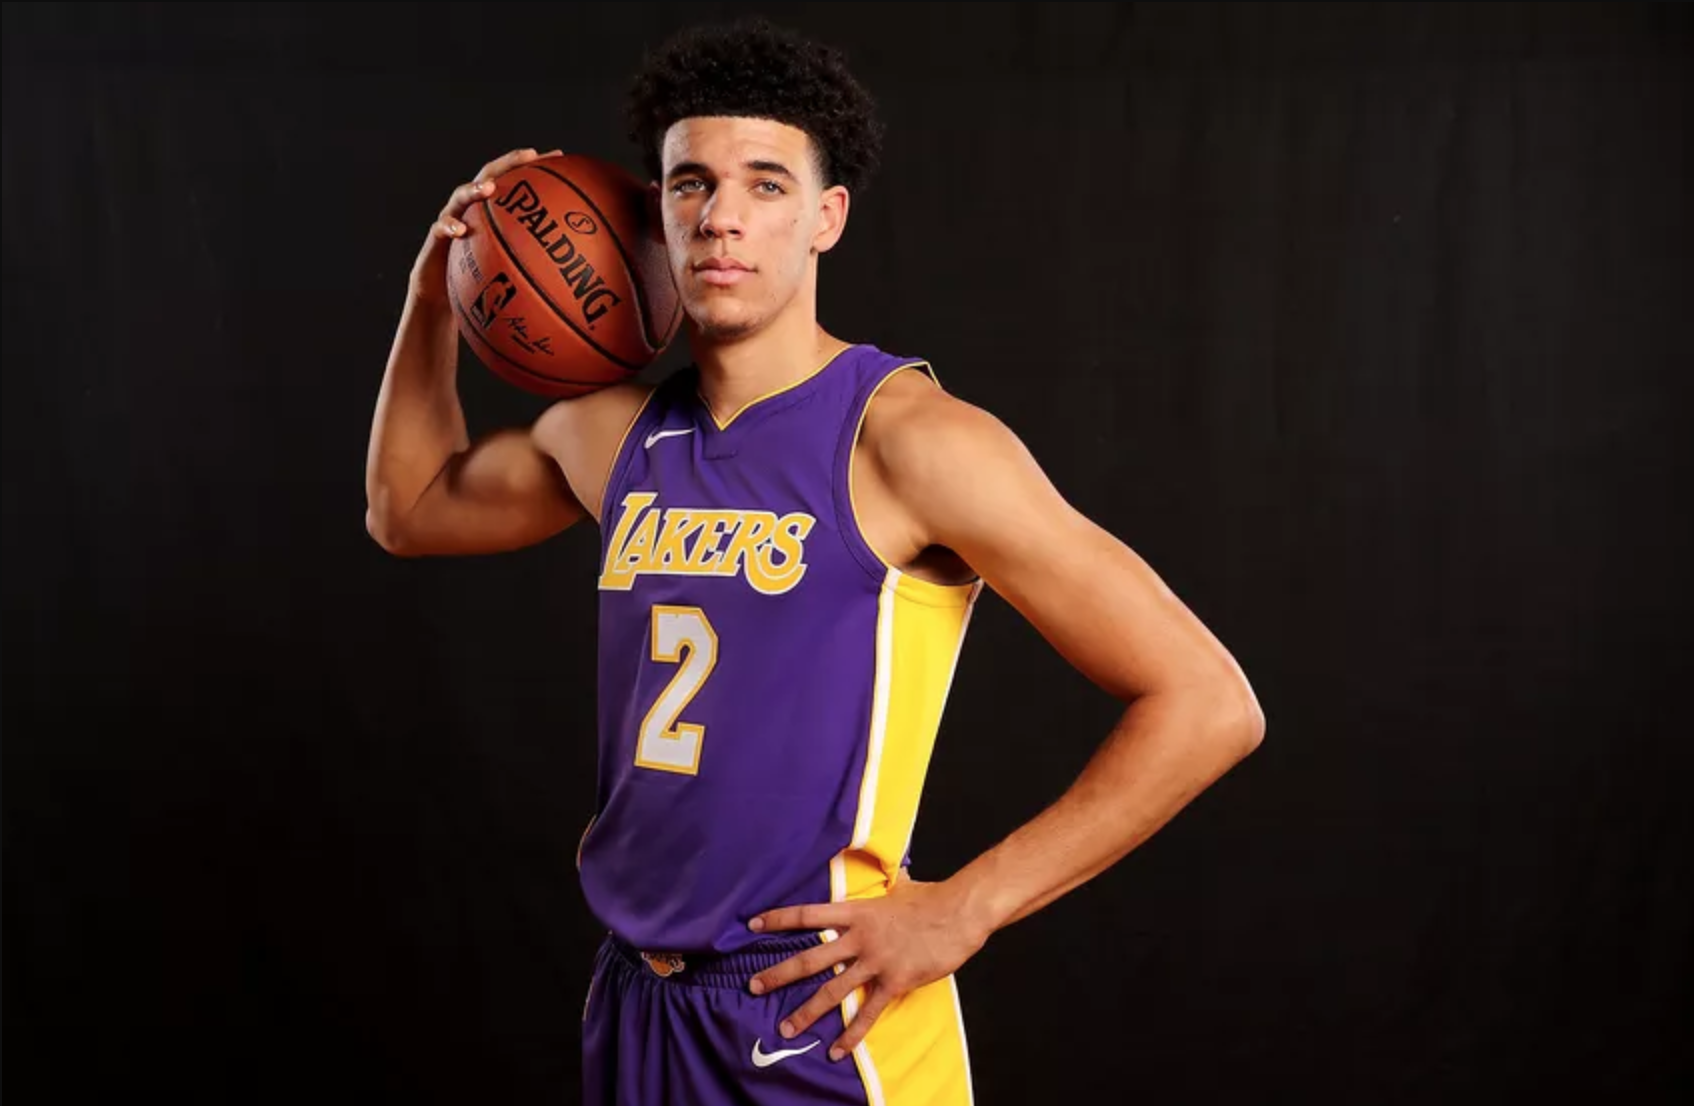 Lonzo Ball Basketball Reference >> Lonzo Ball Breaks Another Record; Why We Should've Seen This Coming